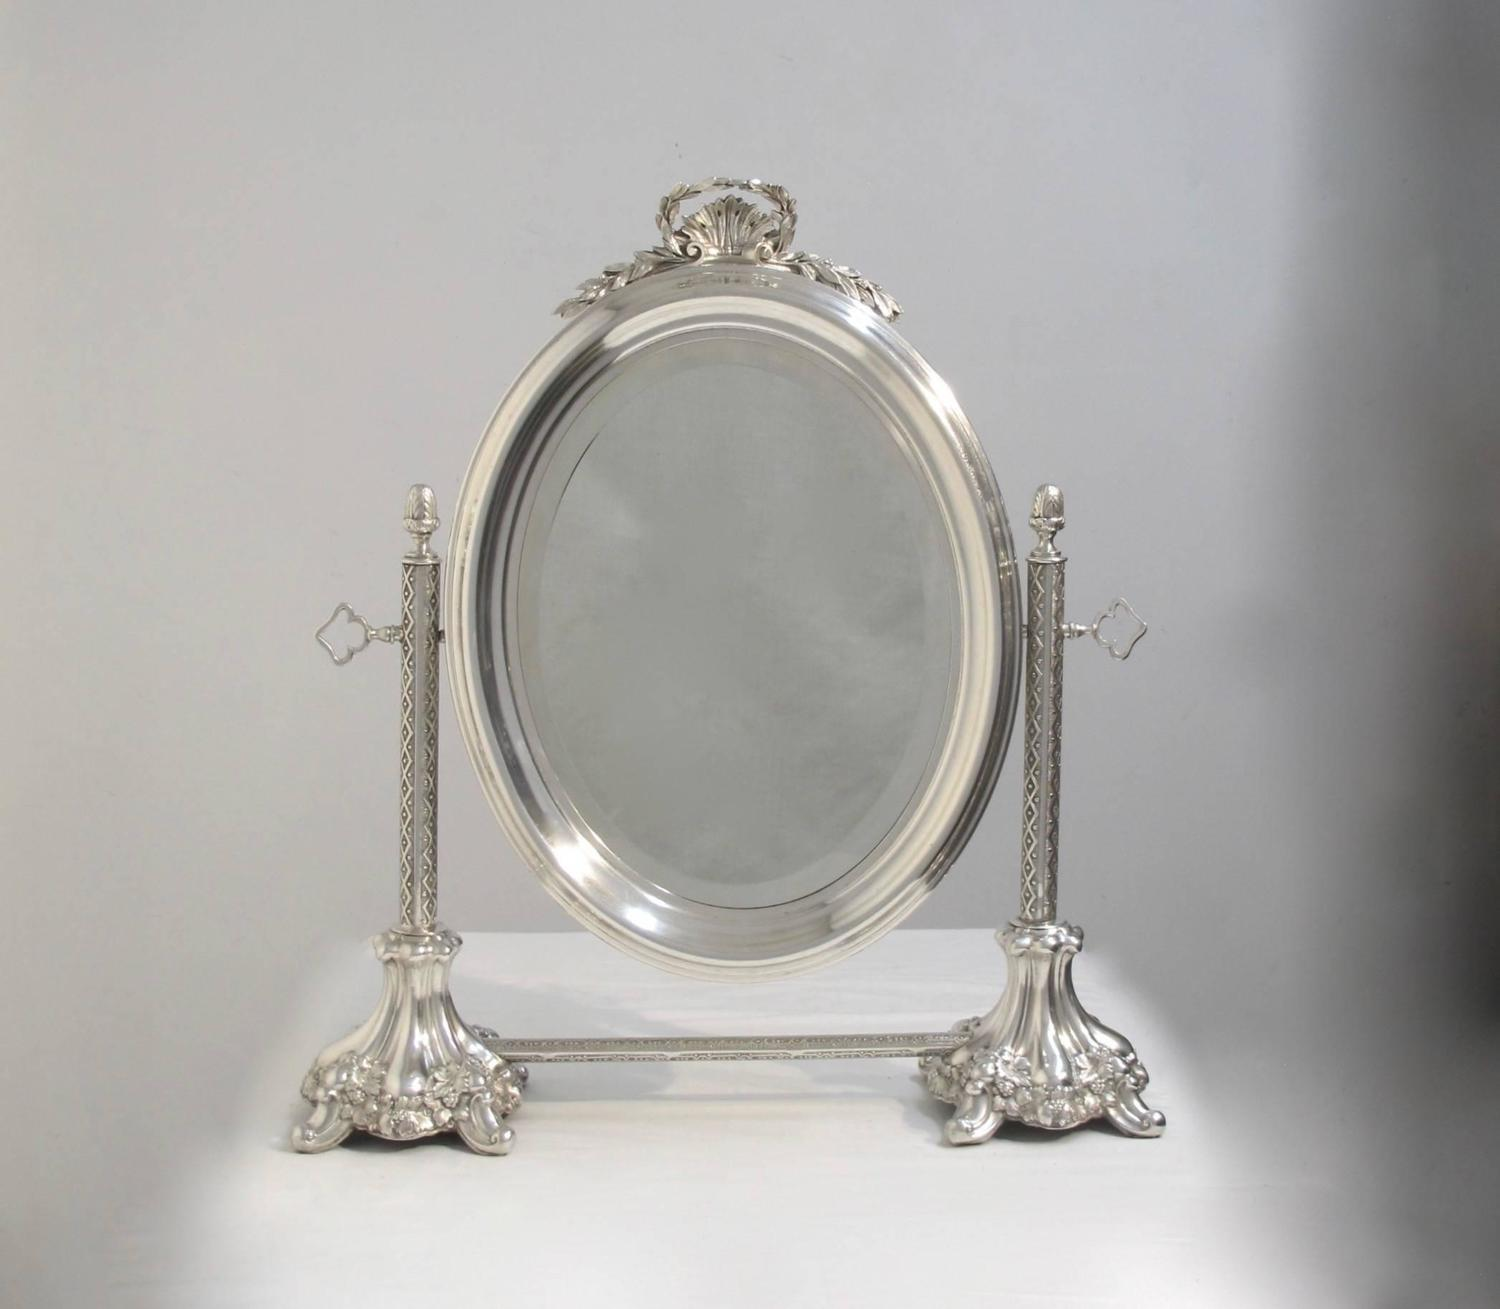 Silver plate vanity mirror at 1stdibs for Silver vanity table